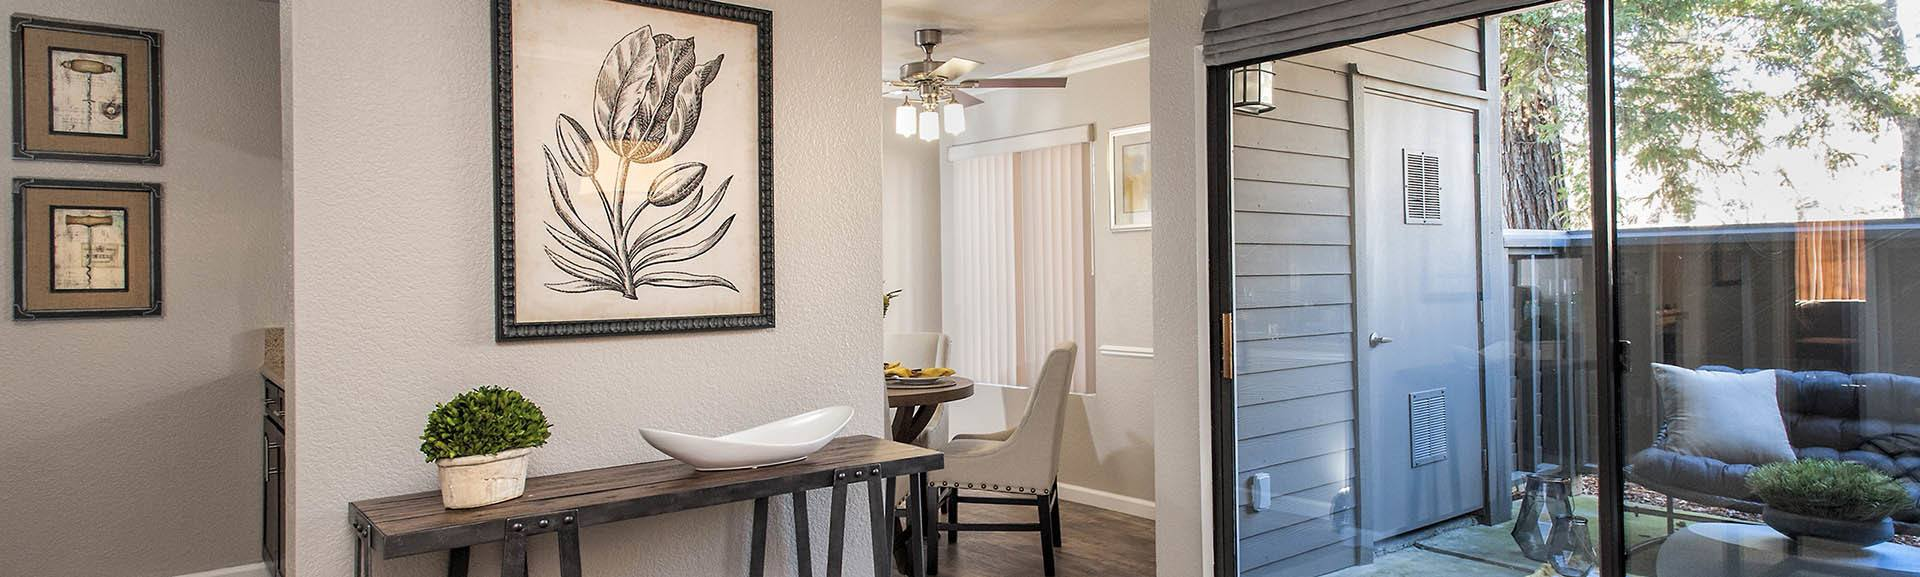 Learn about our neighborhood at Deer Valley Apartment Homes in Roseville, CA on our website